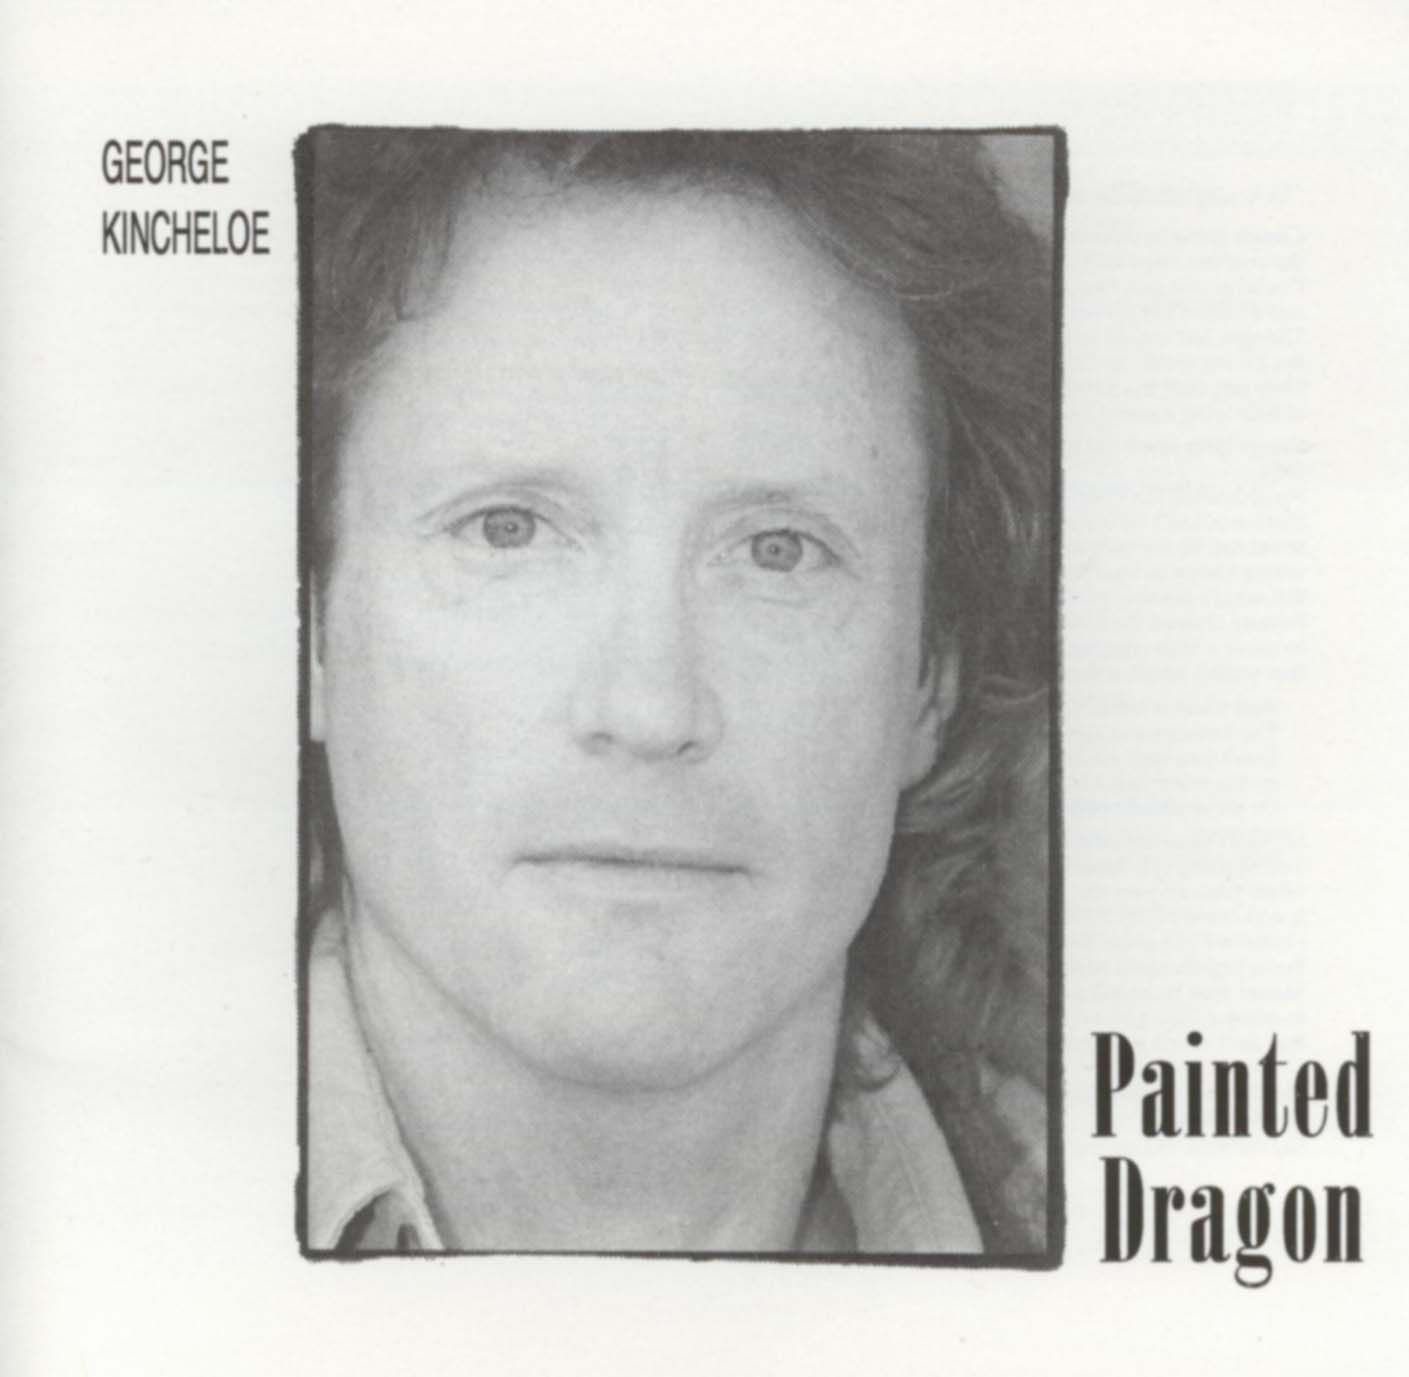 Georges_cd_Painted_Dragons02